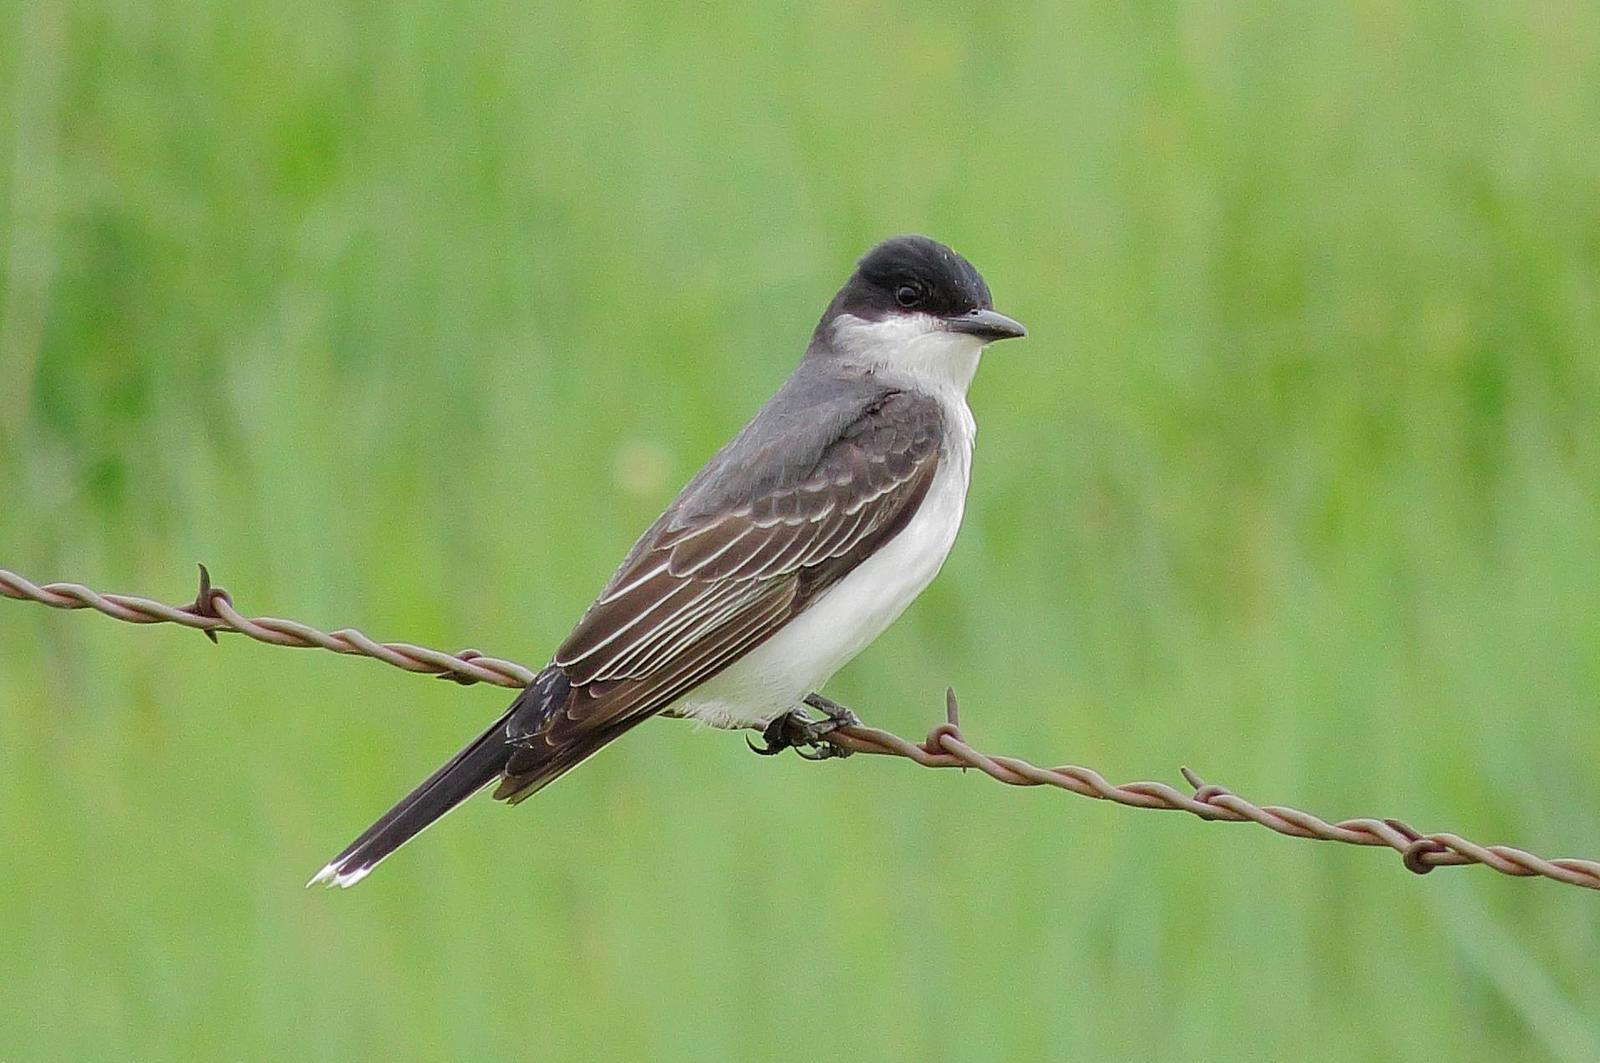 Eastern Kingbird Photo by Kent Jensen